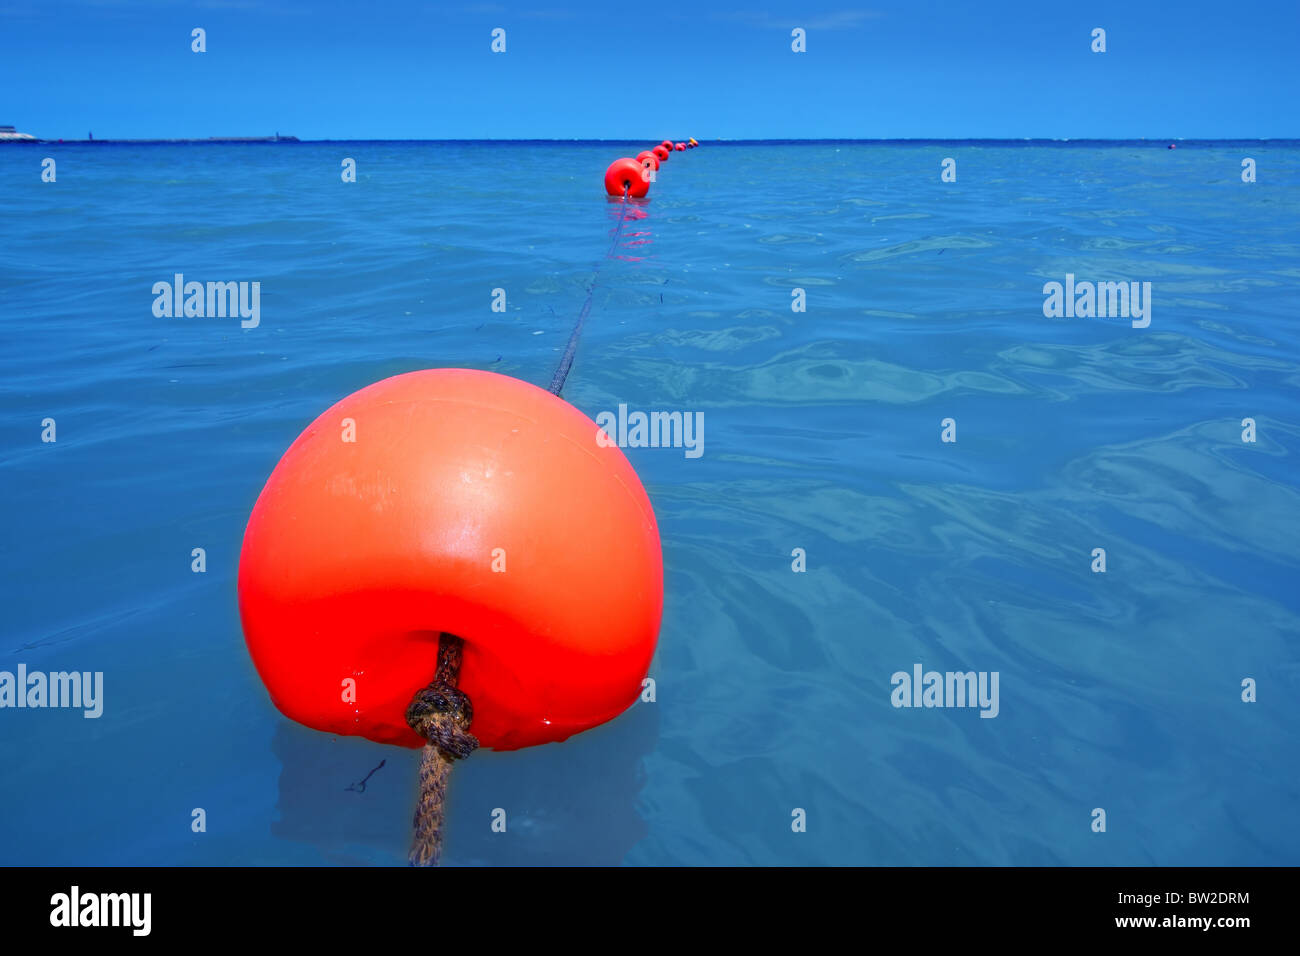 red buoy row floating blue sea with rope closeup perspective - Stock Image